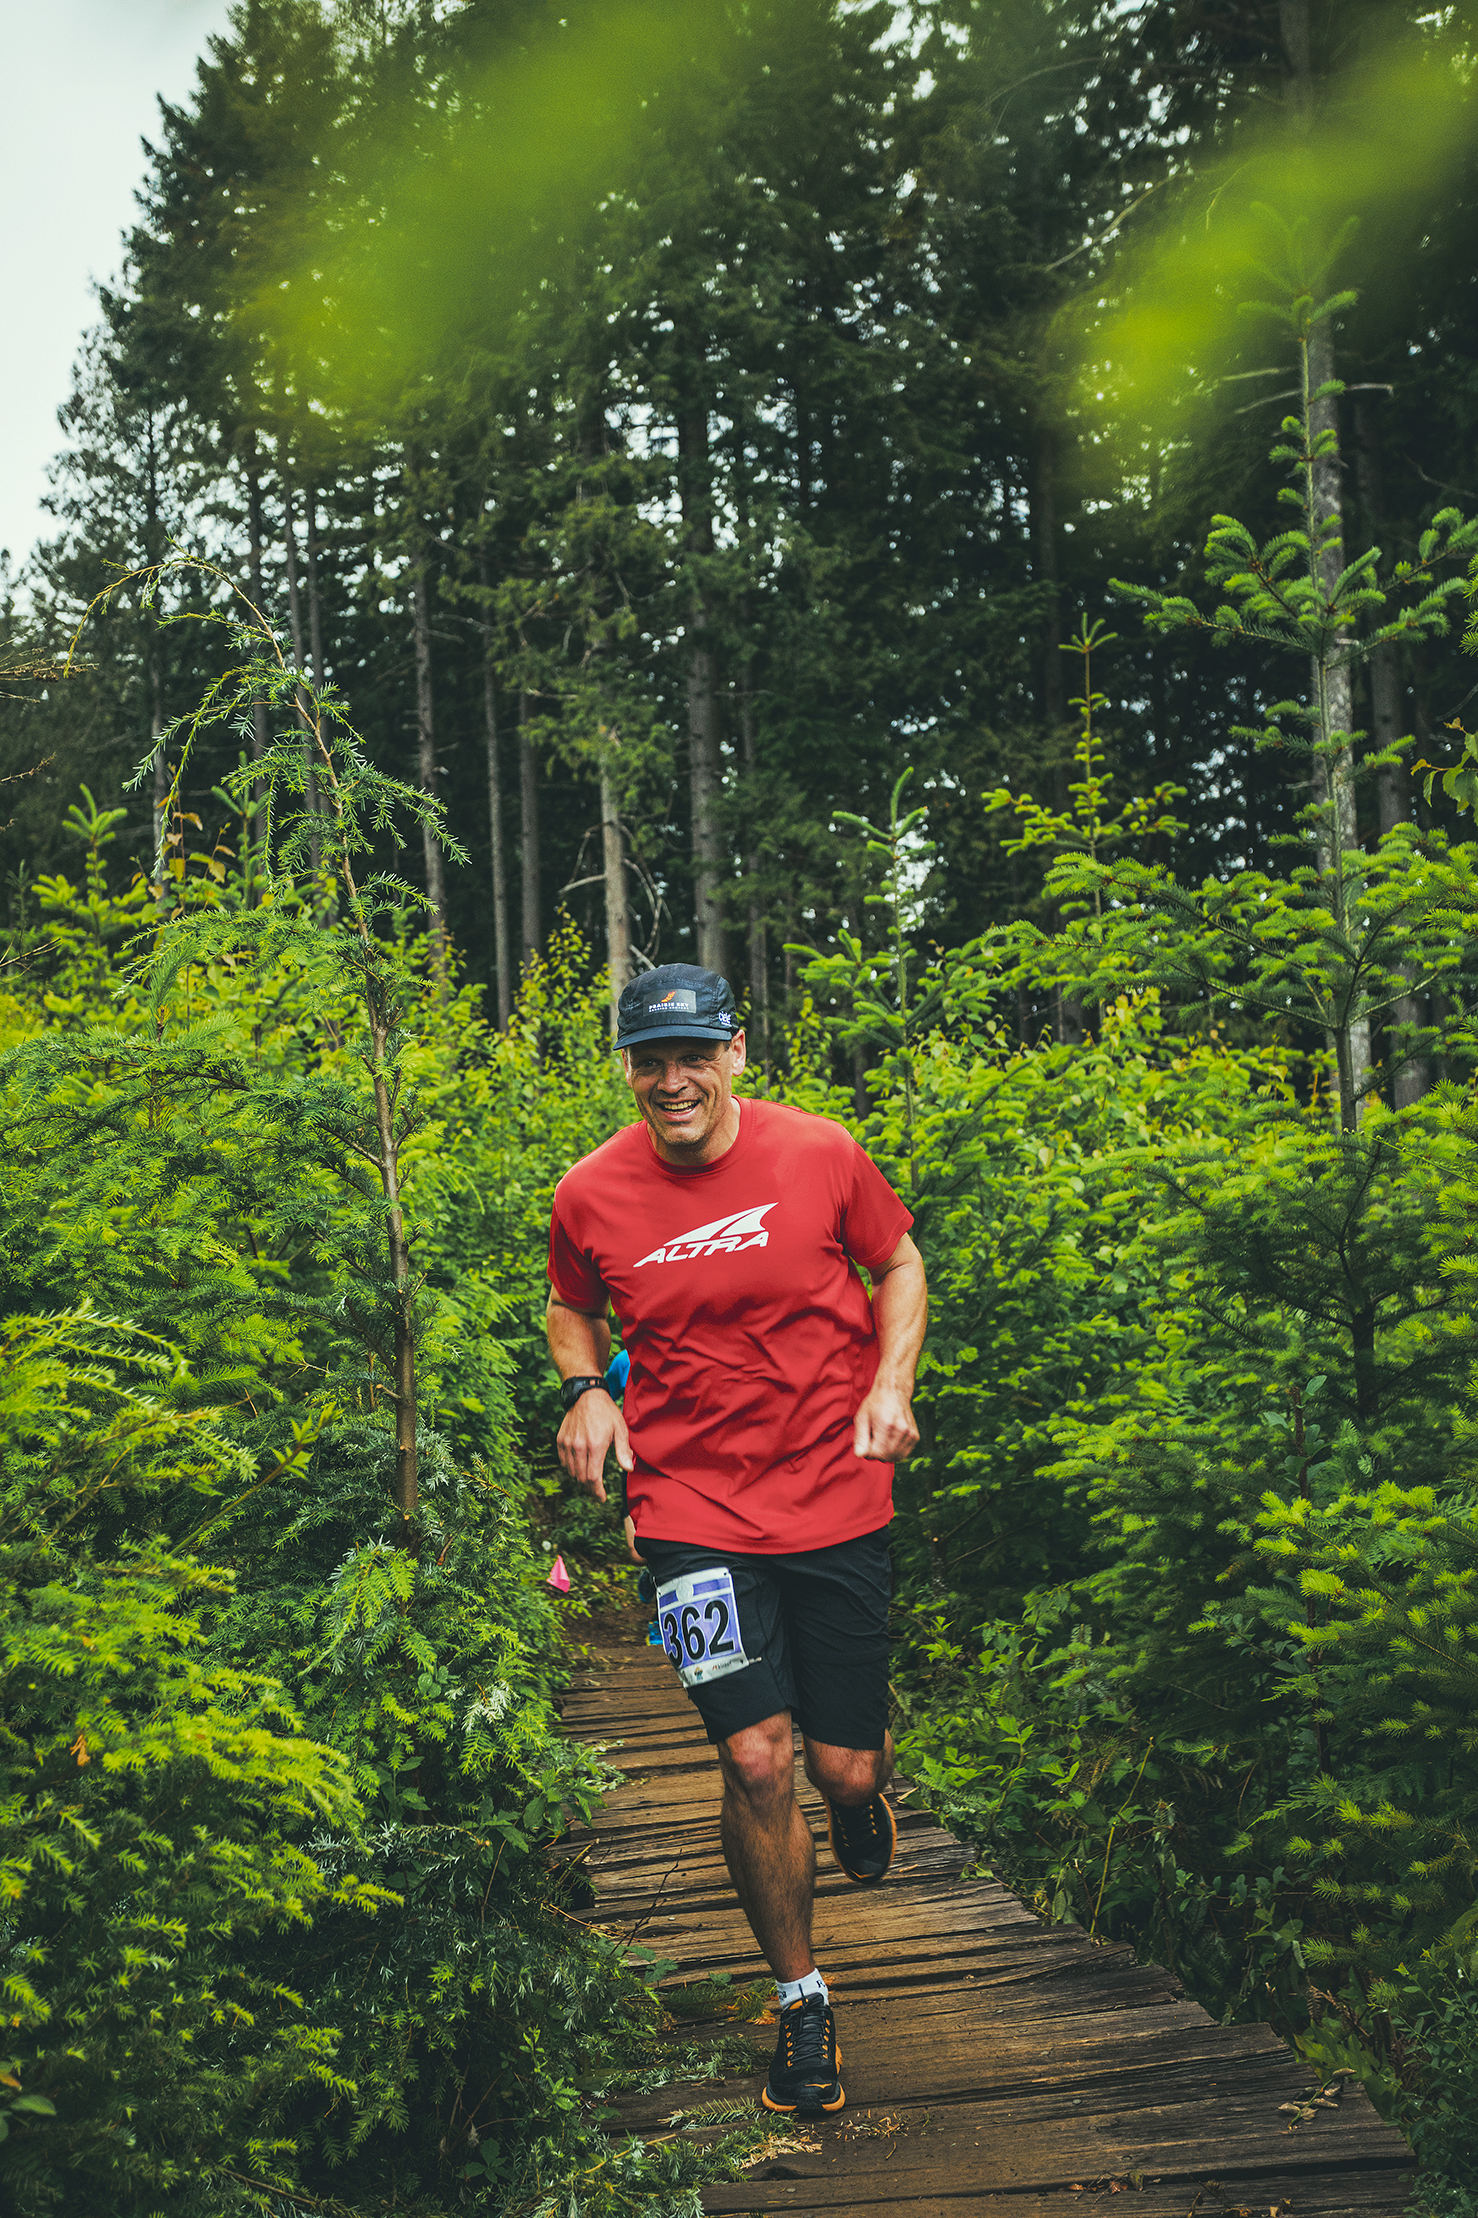 Fraser Valley Trail Races - Bear Mountain - IMG_1471 by Brice Ferre Studio - Vancouver Portrait Adventure and Athlete Photographer.jpg